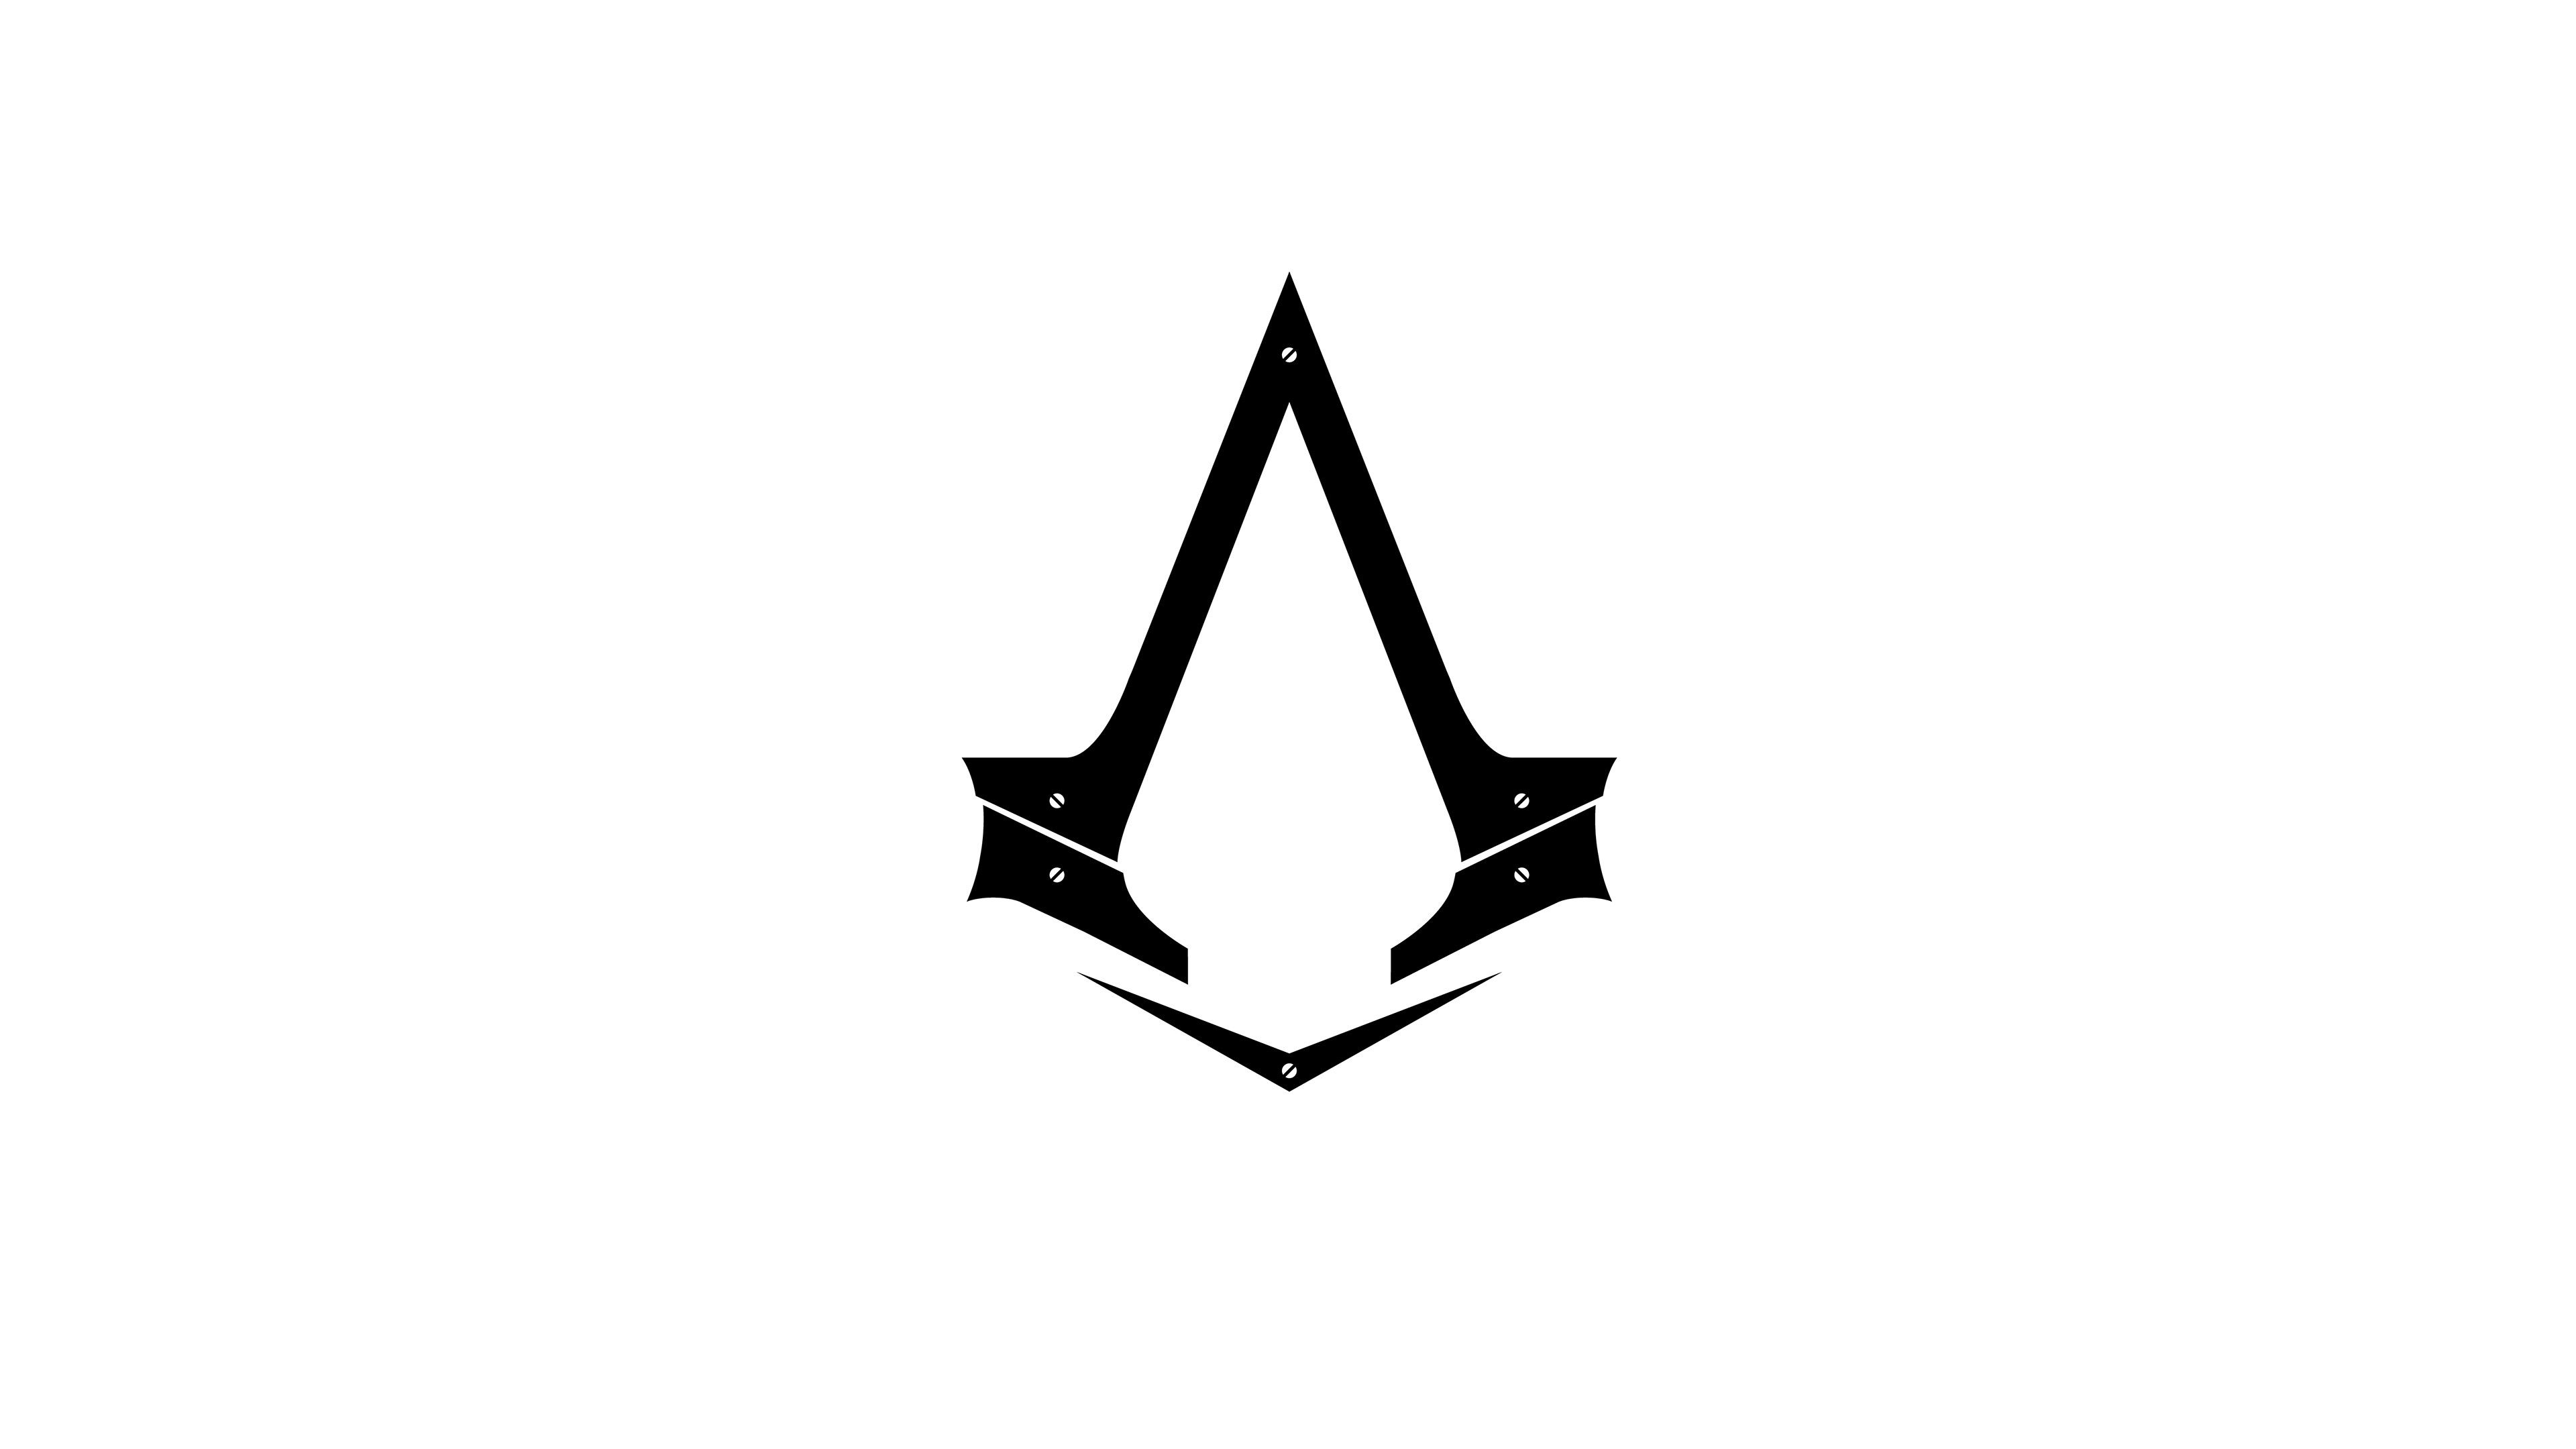 Logo Assassins Creed Wallpapers Wallpapers Backgrounds Images Art Photos Assassins Creed Assassin Assassins Creed Syndicate